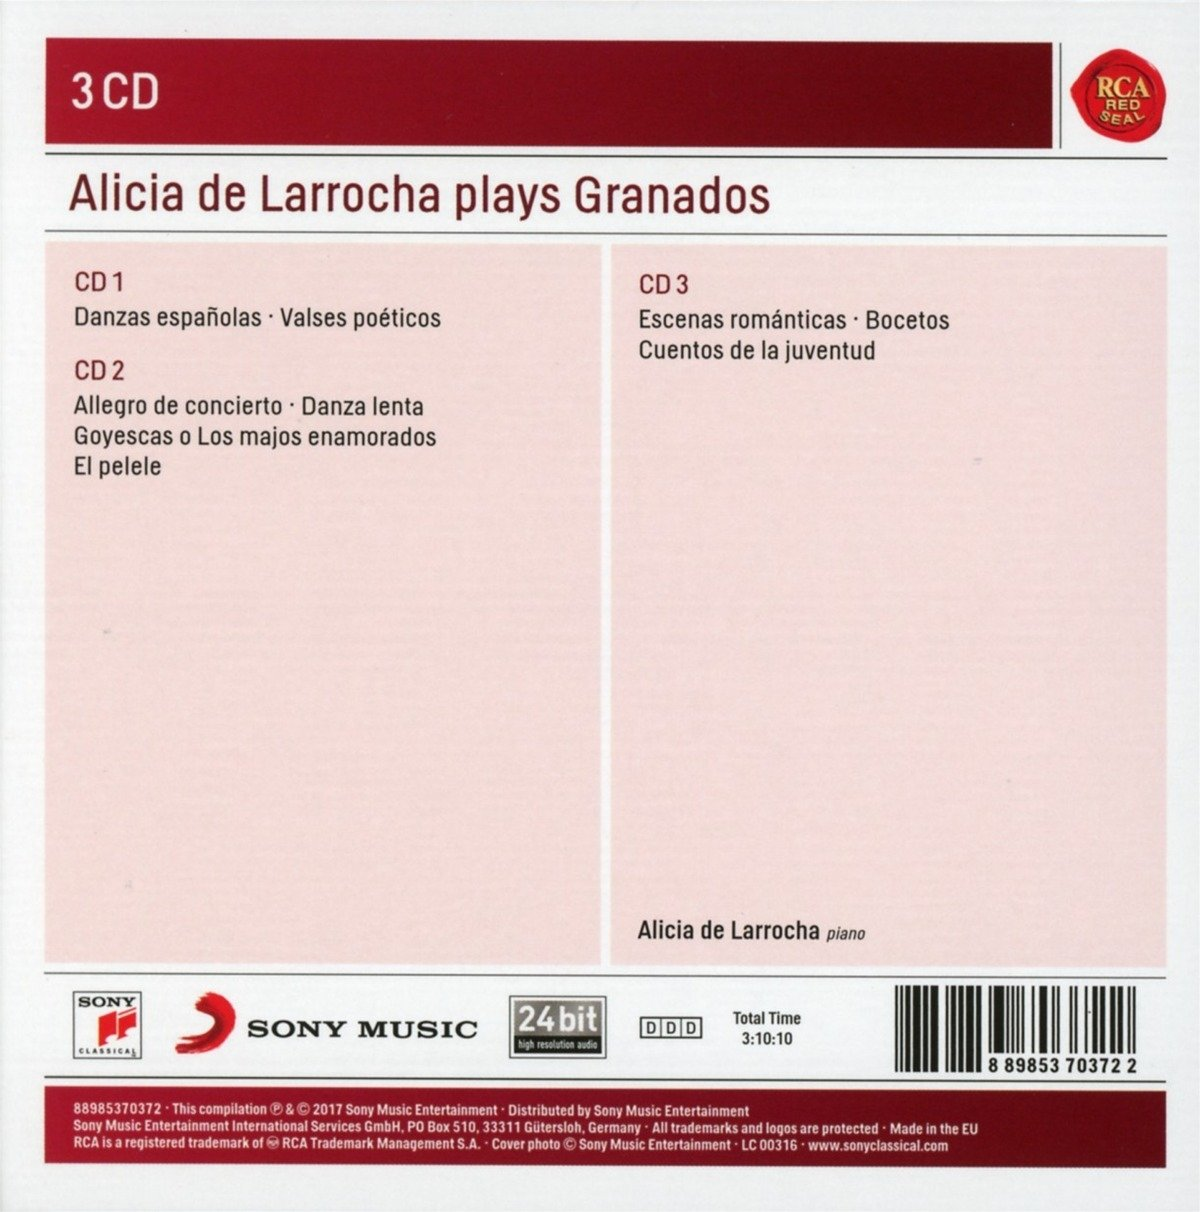 Alicia De Larrocha, Enrique Granados, __ - Alicia De Larrocha Plays Granados - Amazon.com Music